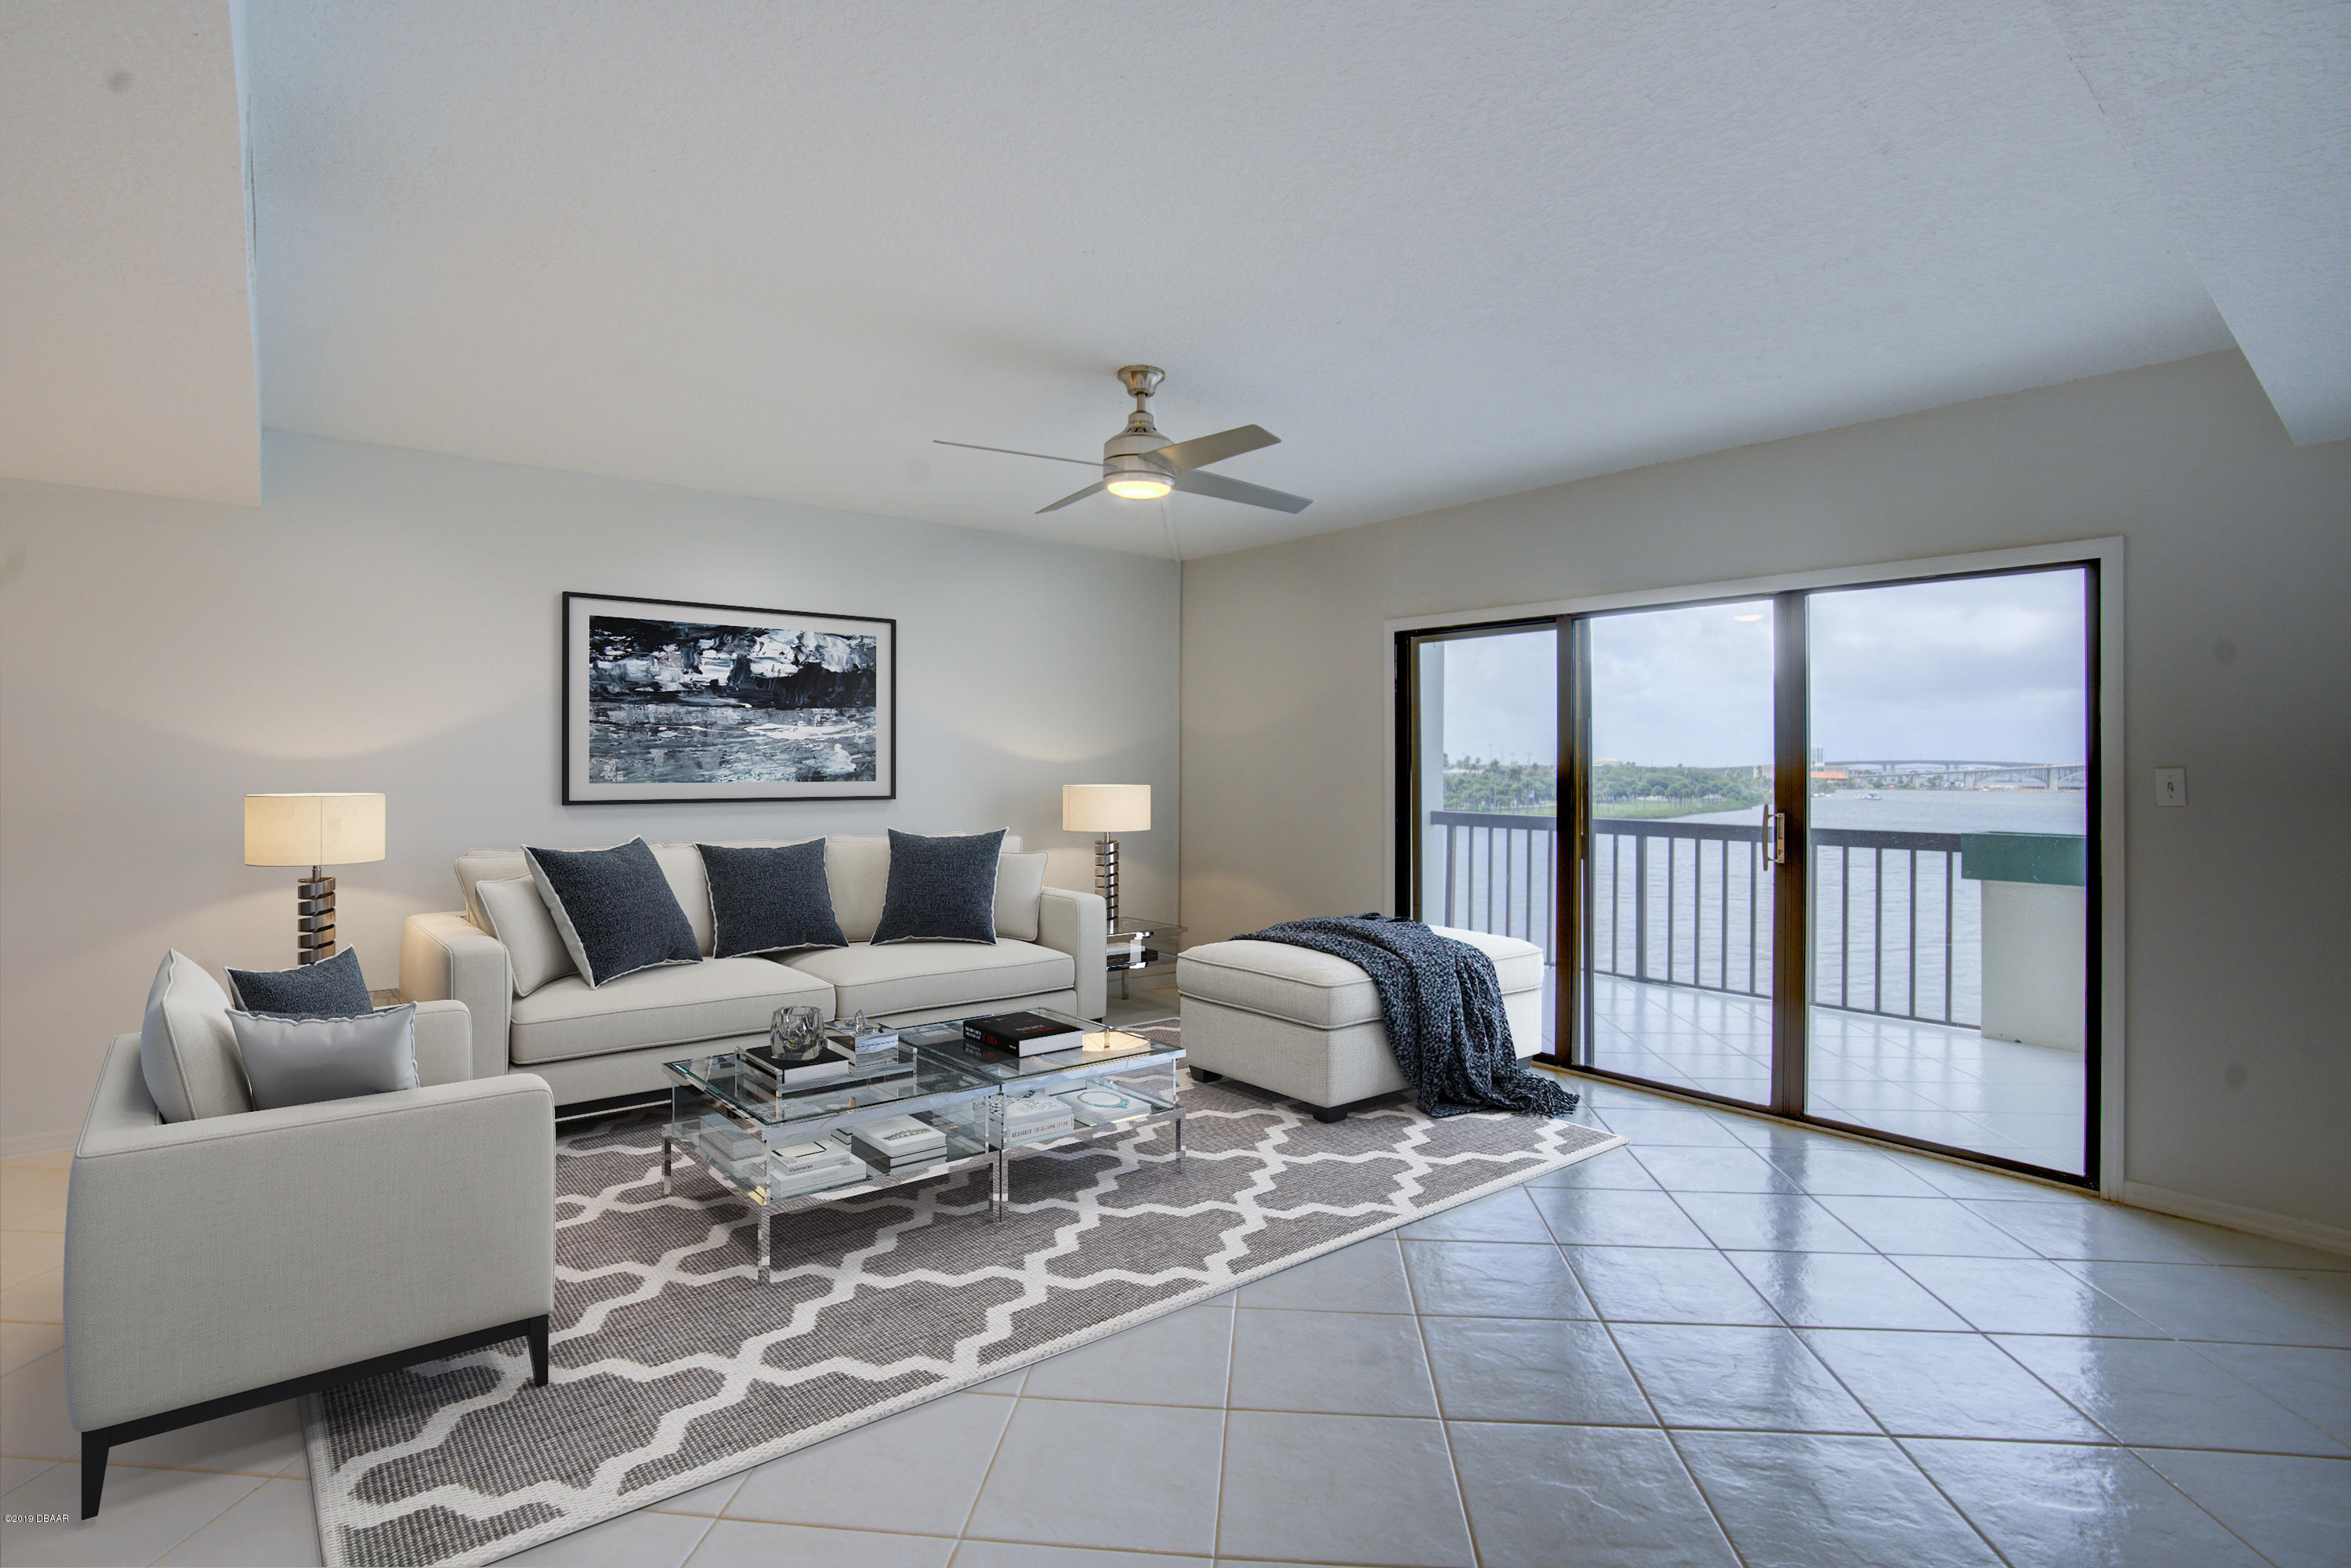 745 Marina Point Daytona Beach - 2